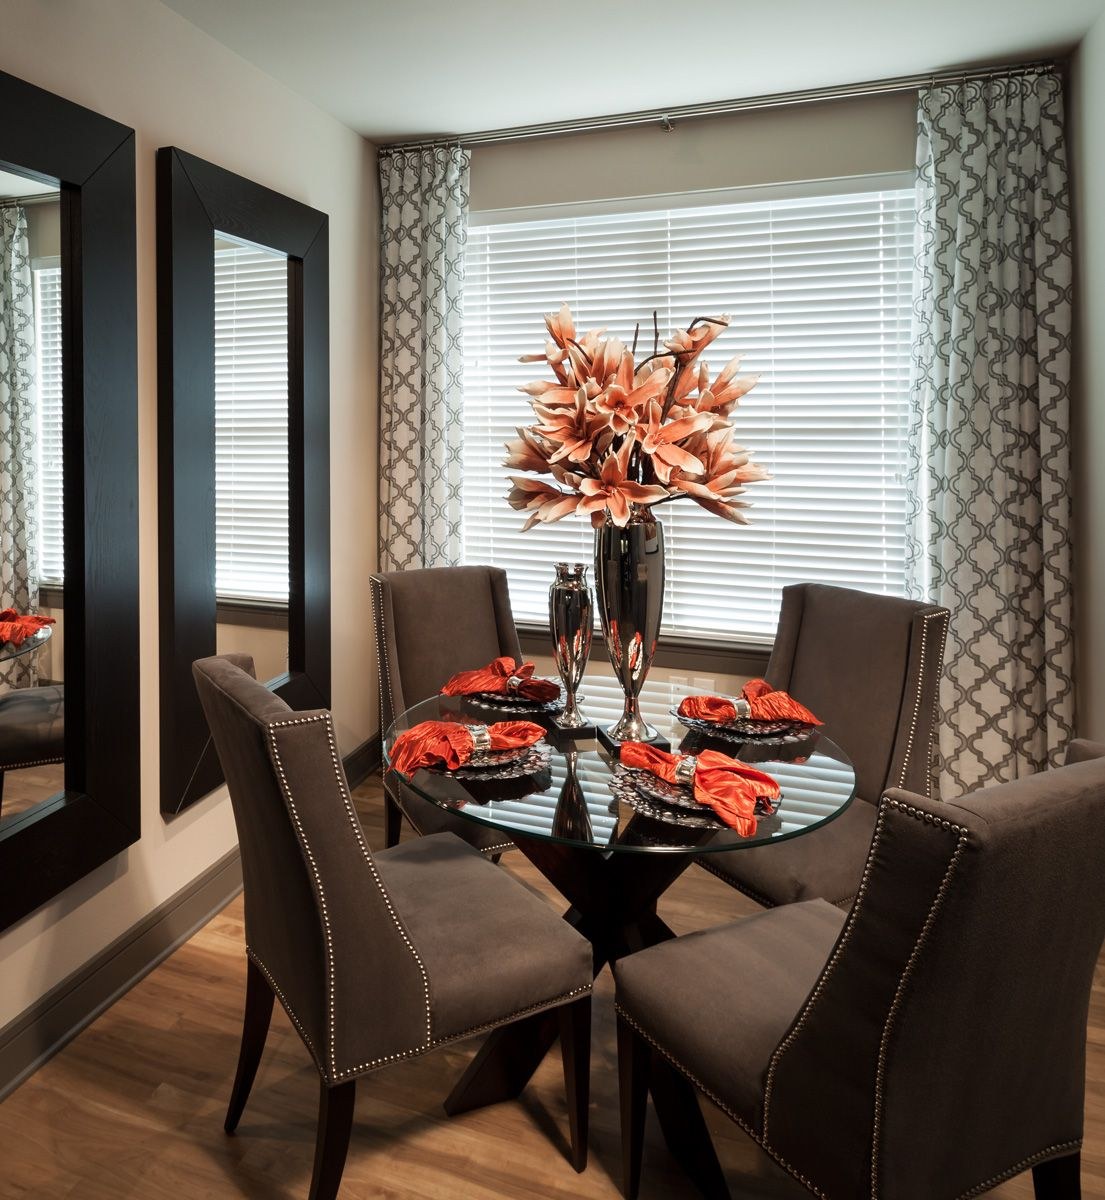 Elegant Tableware For Dining Rooms With Style: 2 Bedroom Model - Dining Room - 1,207 Sq Ft.